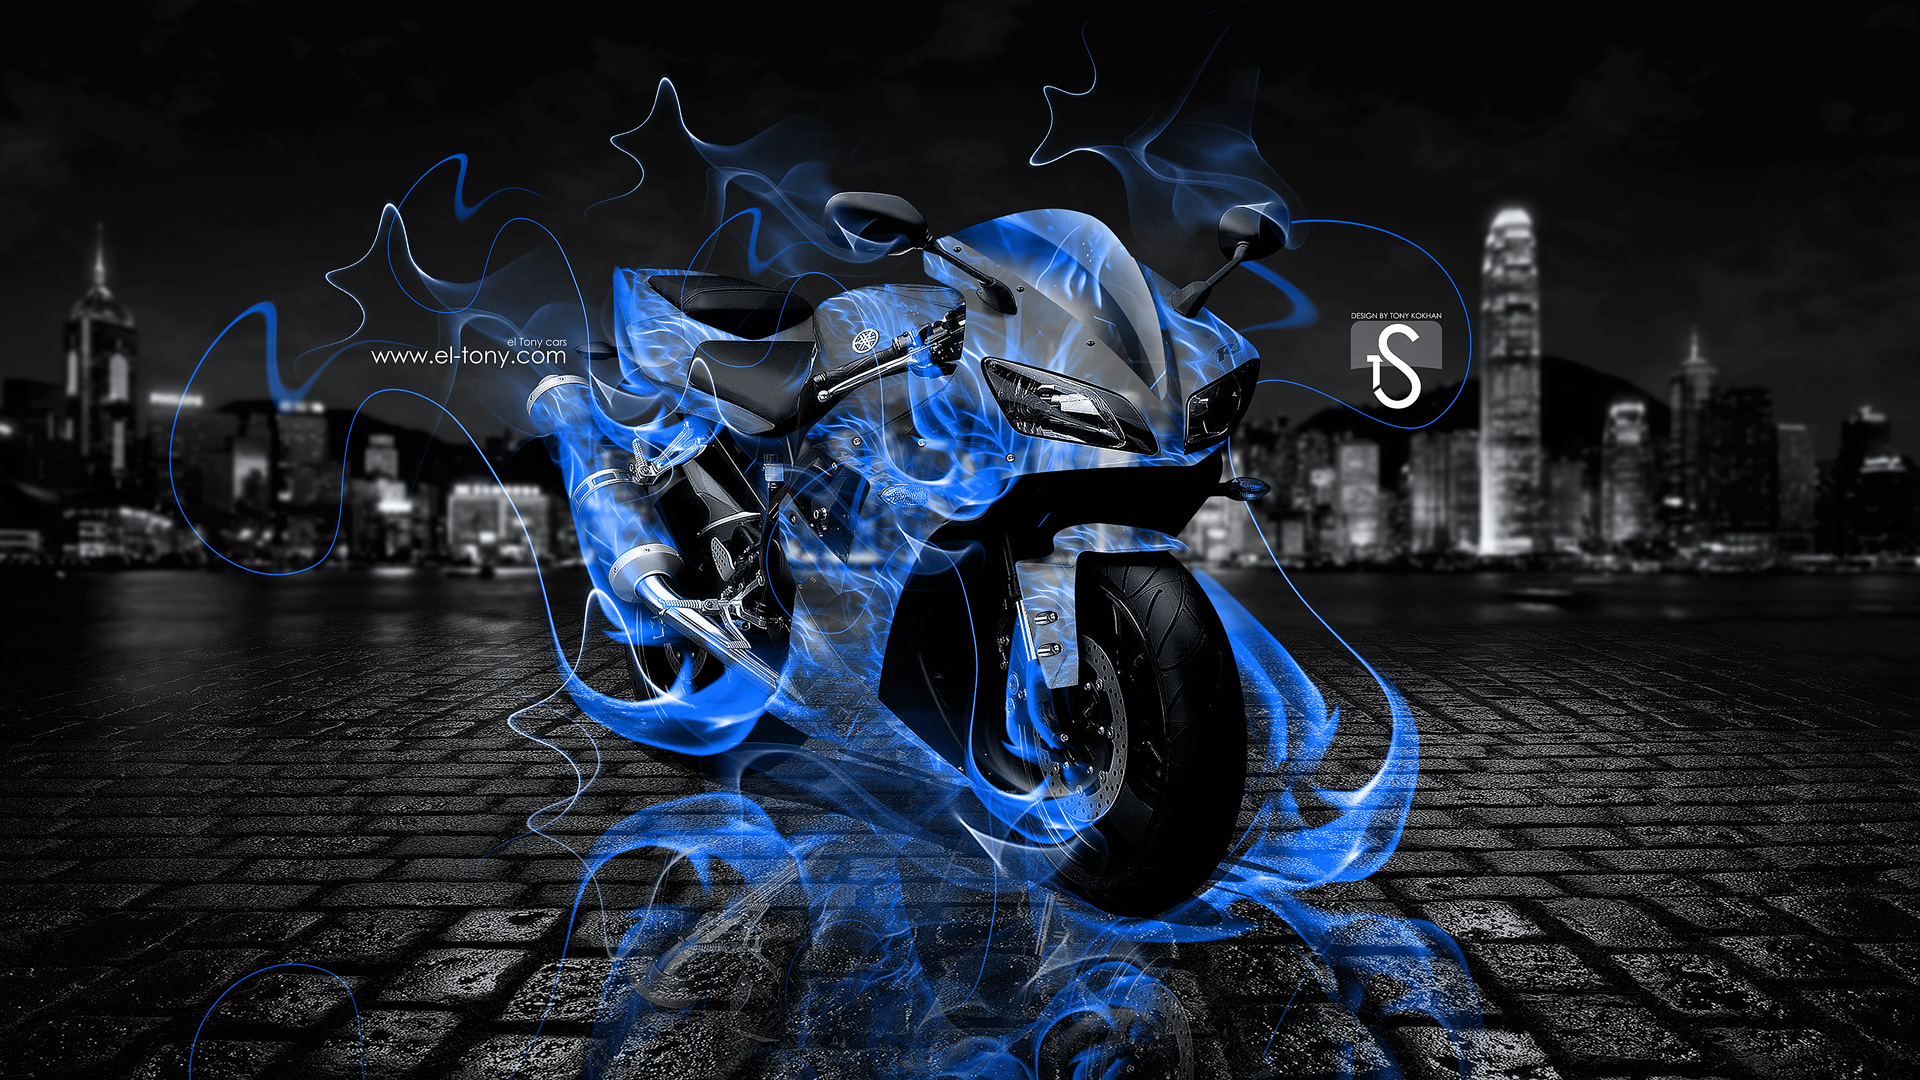 Sugar Skull Wallpaper Hd Yamaha R1 Moto Fire City 2013 El Tony